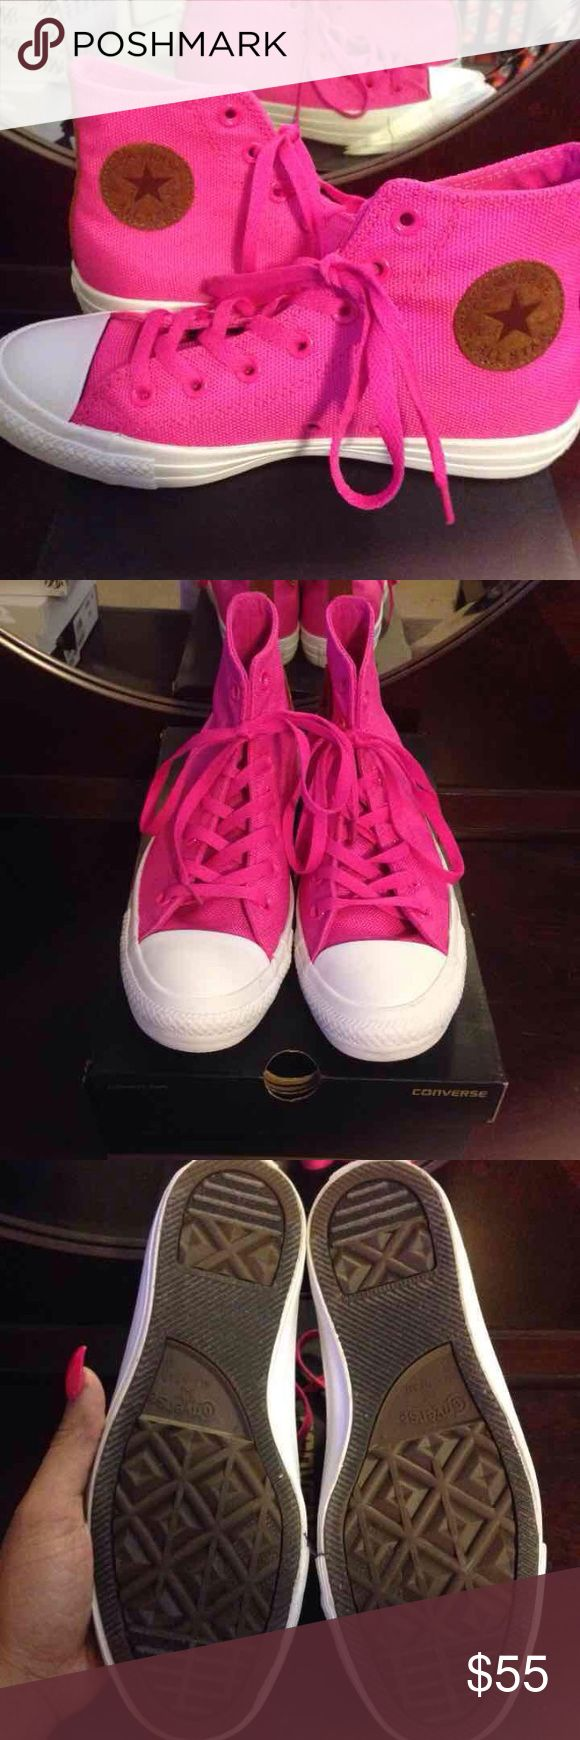 Hot Pink High Top Converse Size 8  Worn once Flawless Original Box Converse Shoes Sneakers